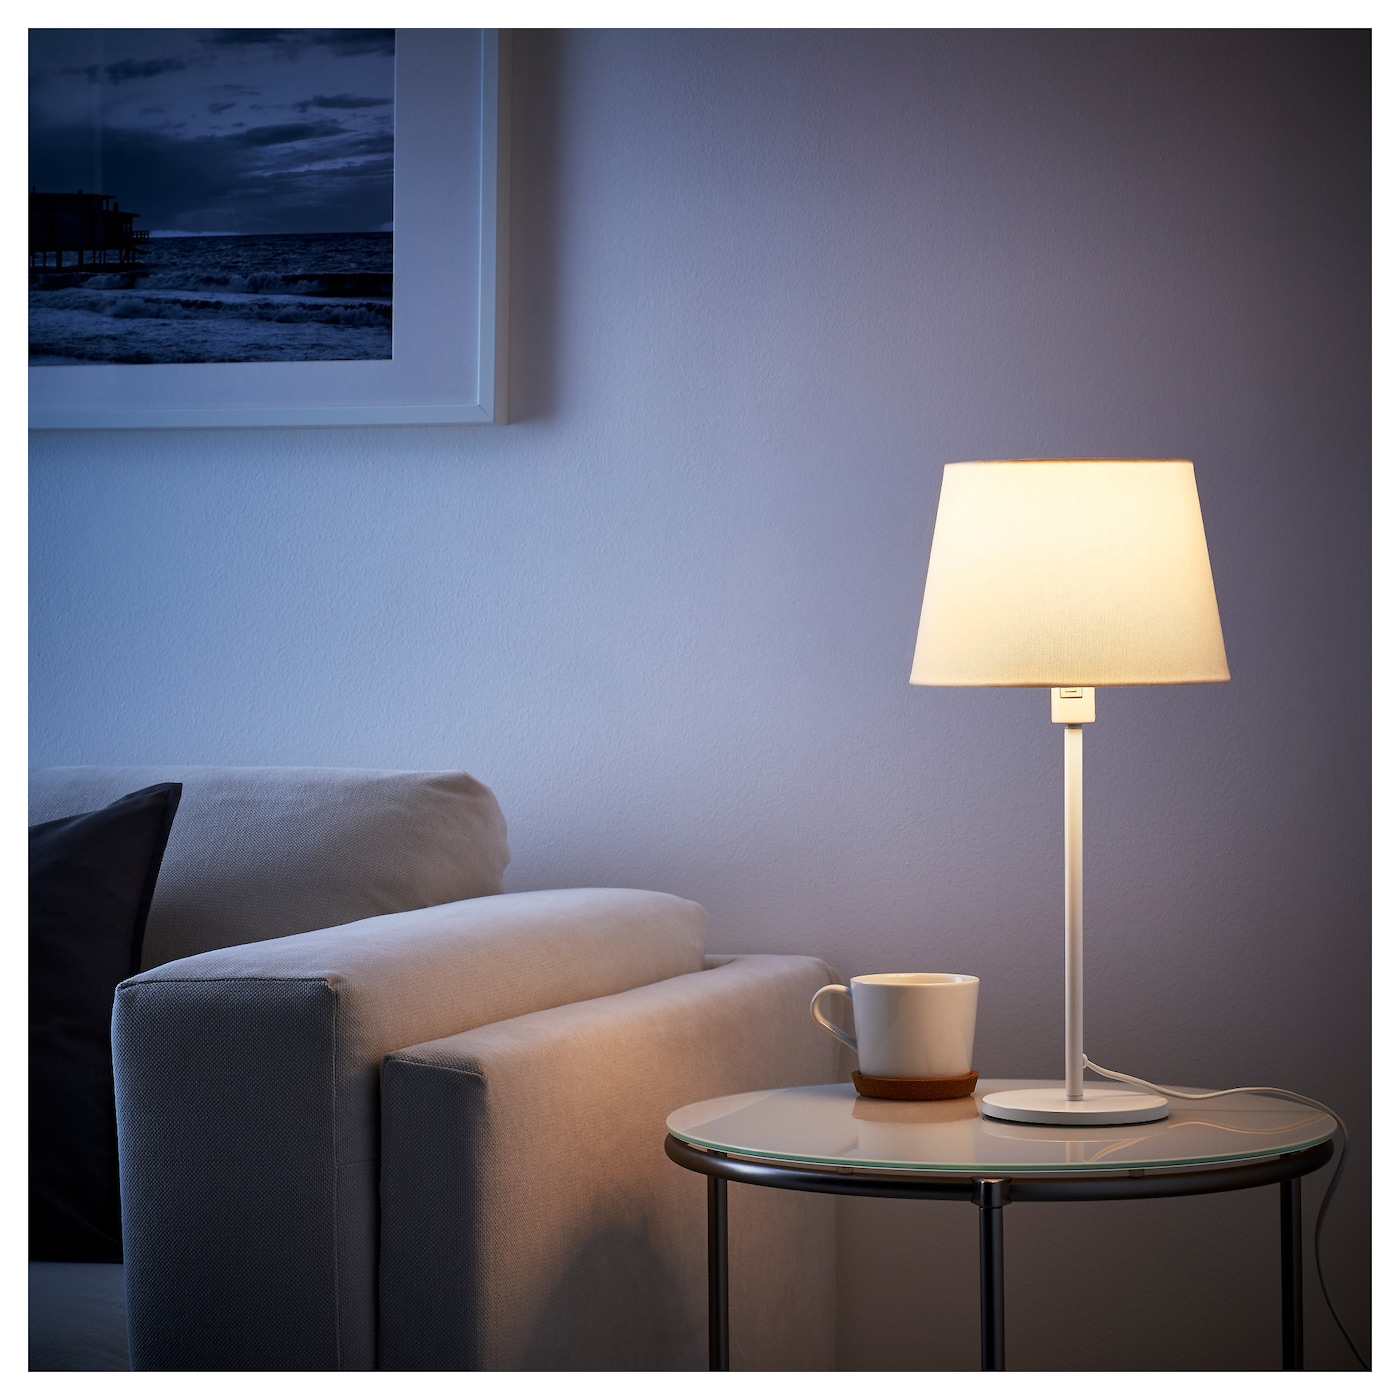 rodd pied de lampe de table blanc 35 cm ikea. Black Bedroom Furniture Sets. Home Design Ideas